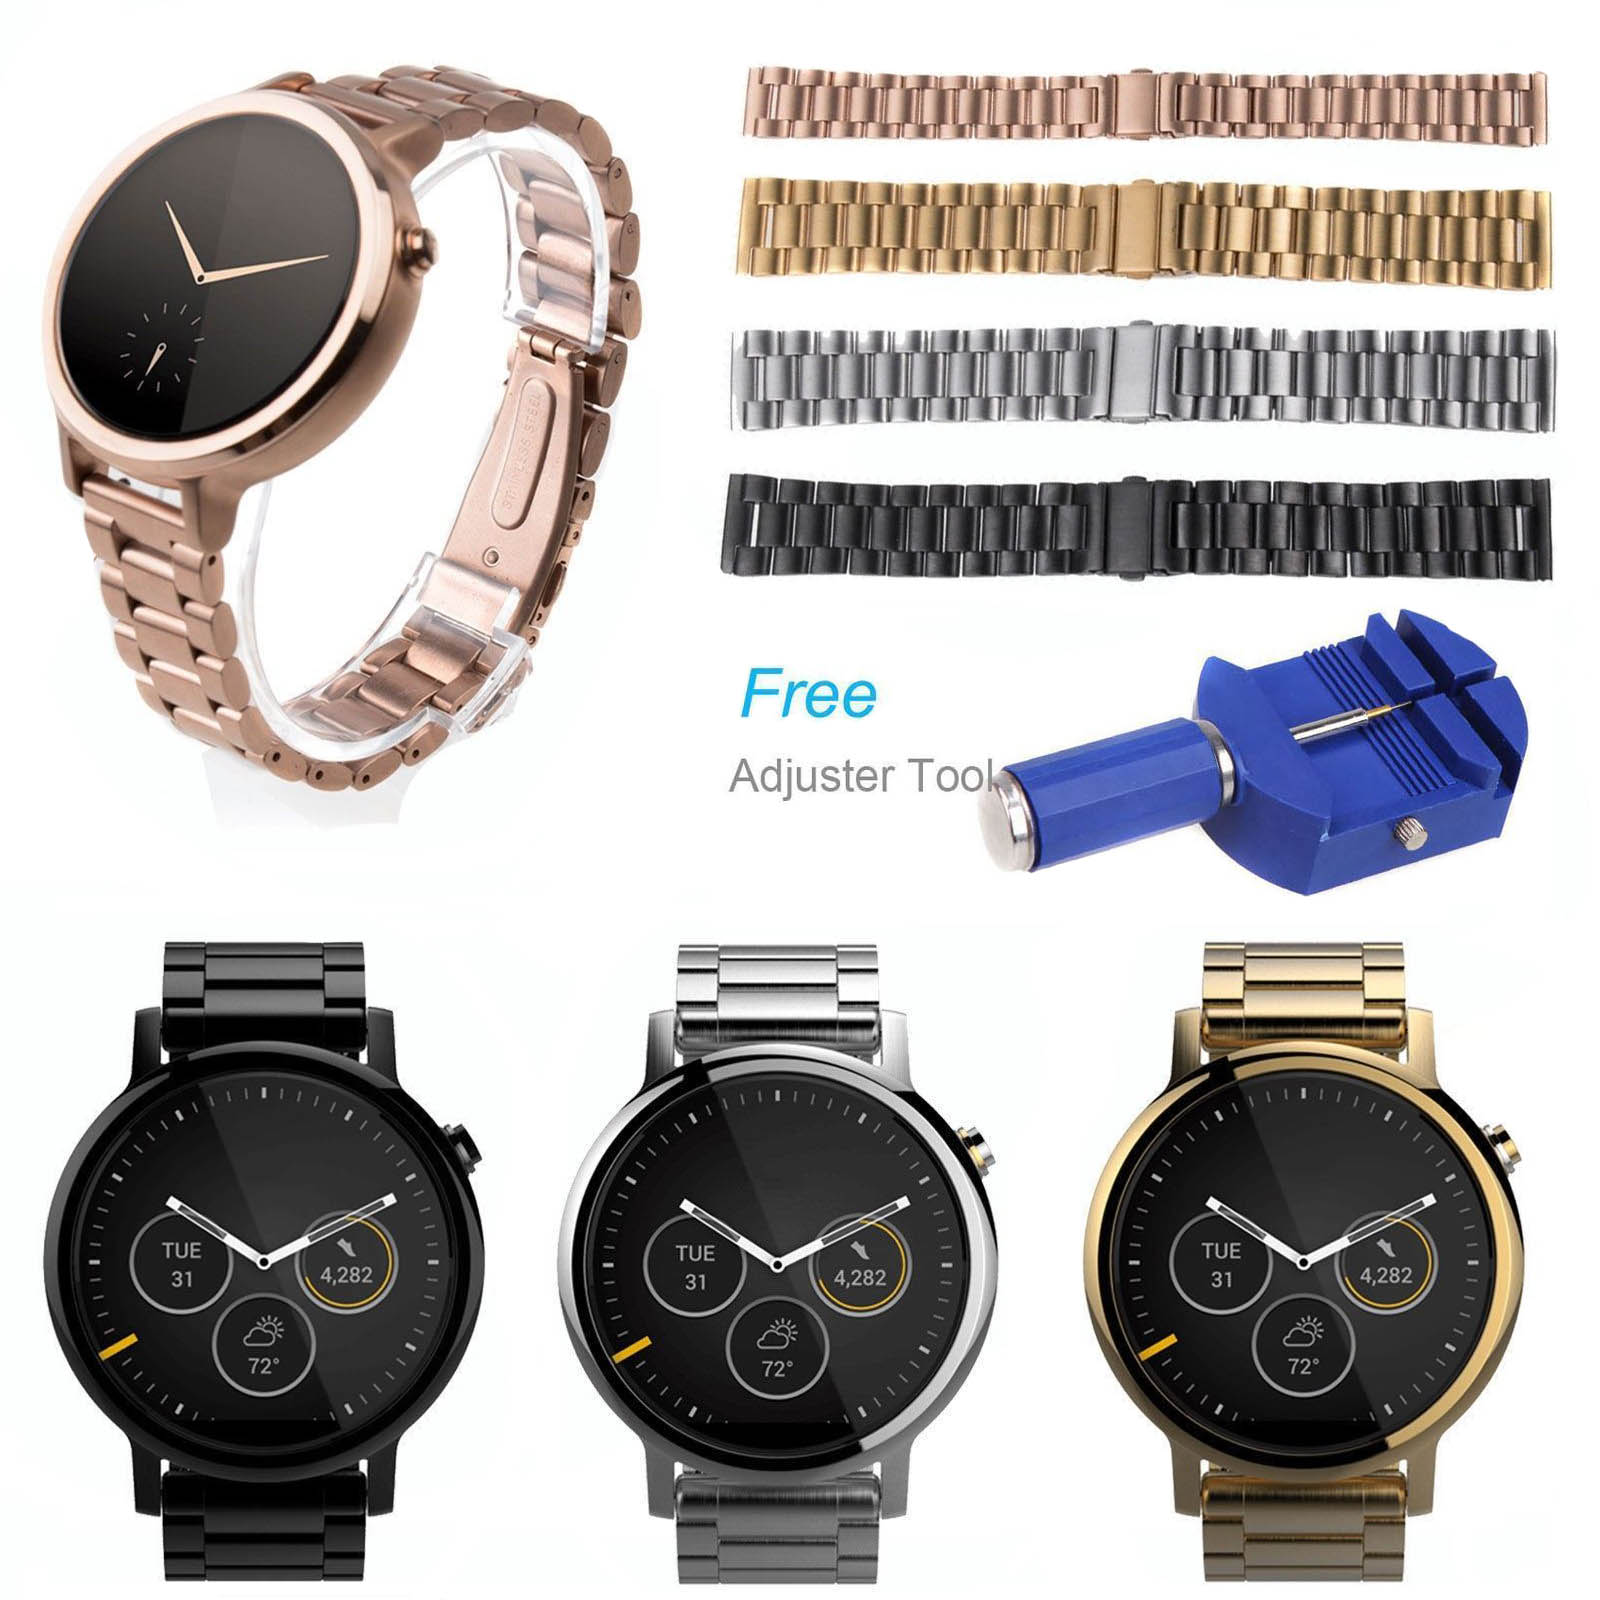 3-Beads Stainless Steel Link Bracelet for Motorola Moto 360 2nd Mens Smart Watch Band Women 42mm 46mm Wrist Strap Adapters Tool milanese magnetic loop stainless steel band for moto 360 2nd smart watch sliver 42mm